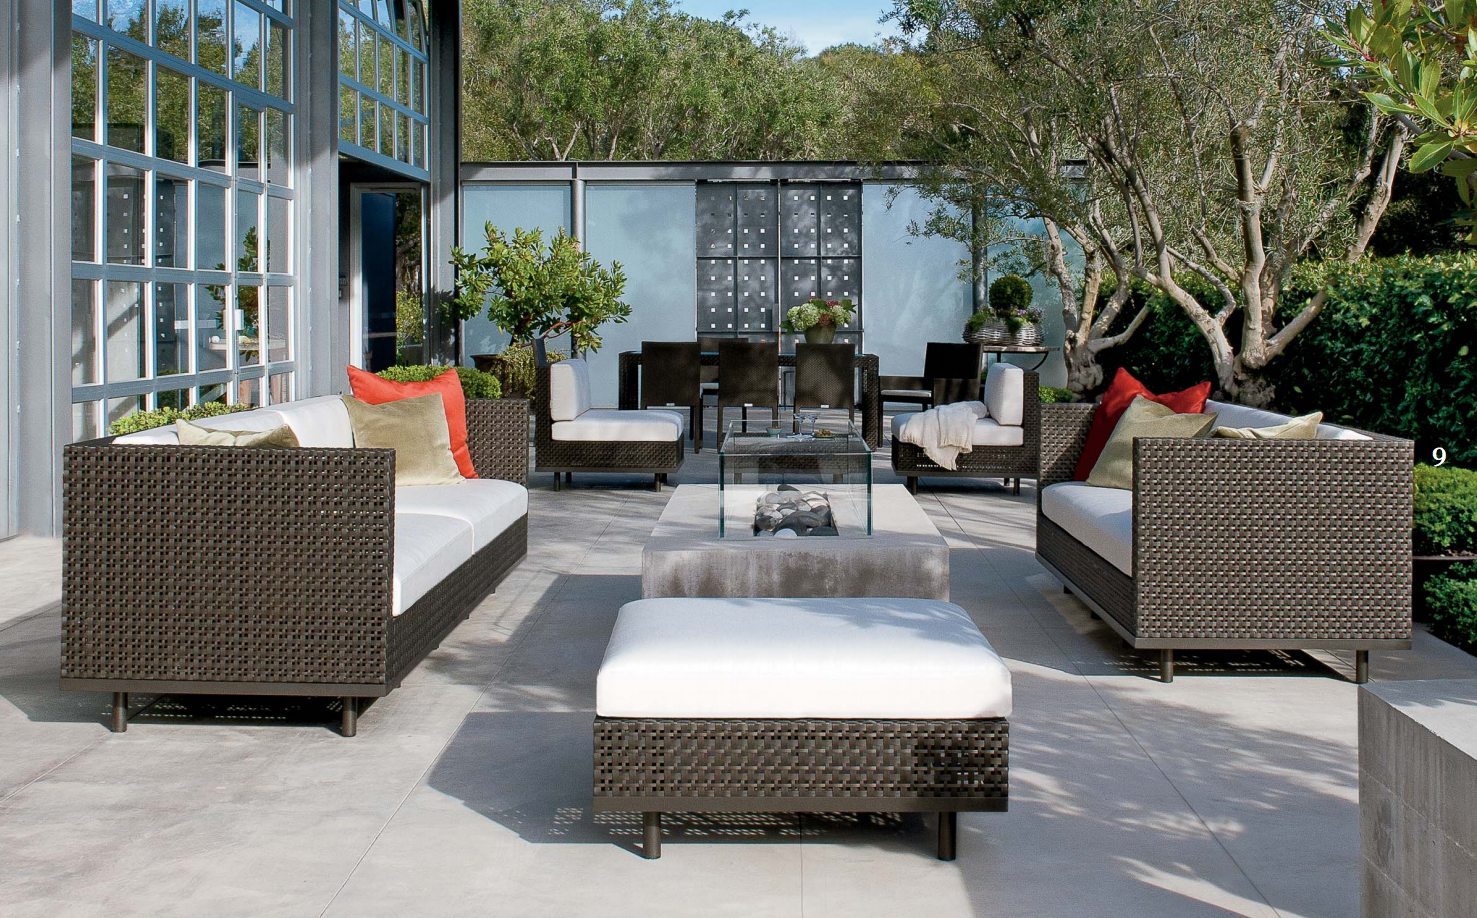 Patio & Things | Easy tips for creating an outdoor living ... on Living Spaces Patio Set id=41643